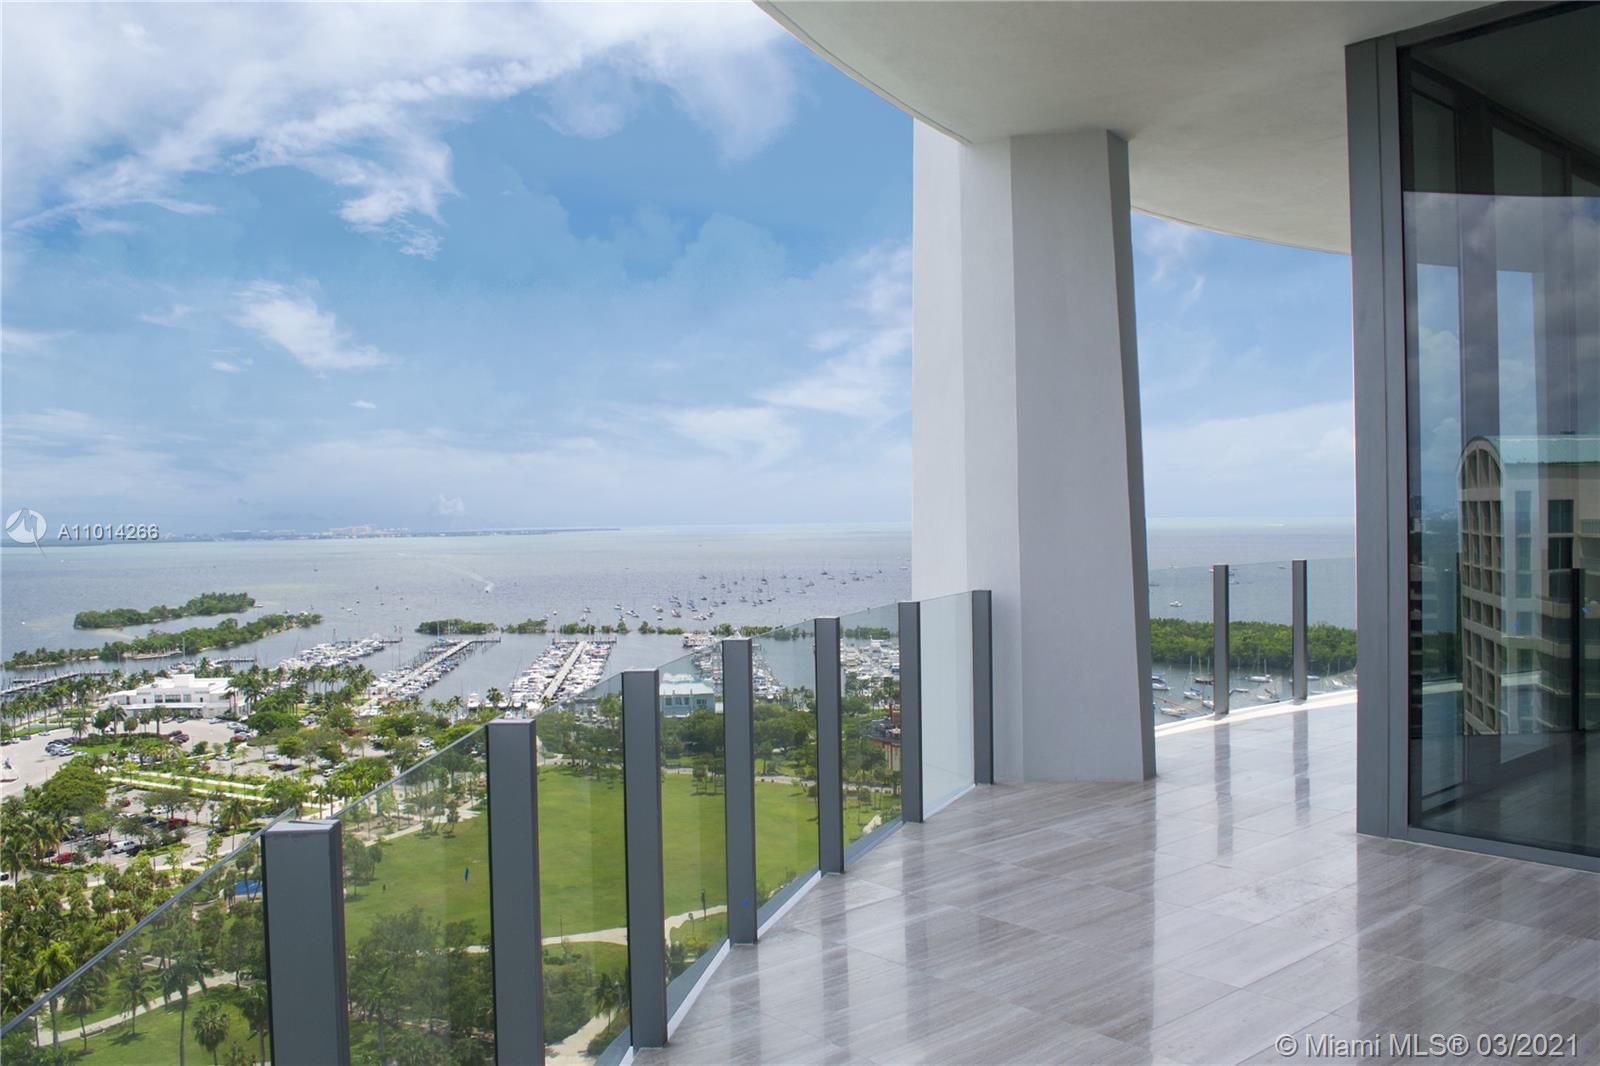 Gorgeous High Floor Available at Two Park Grove, Unit 14D features an expansive floorpan with 3 bedrooms and 3.5 baths, 2917 Interior sqft and 439 sqft of balcony with Gorgeous Bay views. The Residence features 12ft Floor to Ceiling Windows throughout, Private Elevator, Eloquent Kitchen designed by William Scofield with Top of the Line finishes. Designed by Pritzker Prize Winning Architect Rem Koolhass/OMA, Park Grove gives you the ultimate luxurious experience. The building features Spa, Fitness Center, Resort Style Pool, Cabanas, Children's rooms, Restaurants, and 24hr Concierge and Valet. Call LA for showings